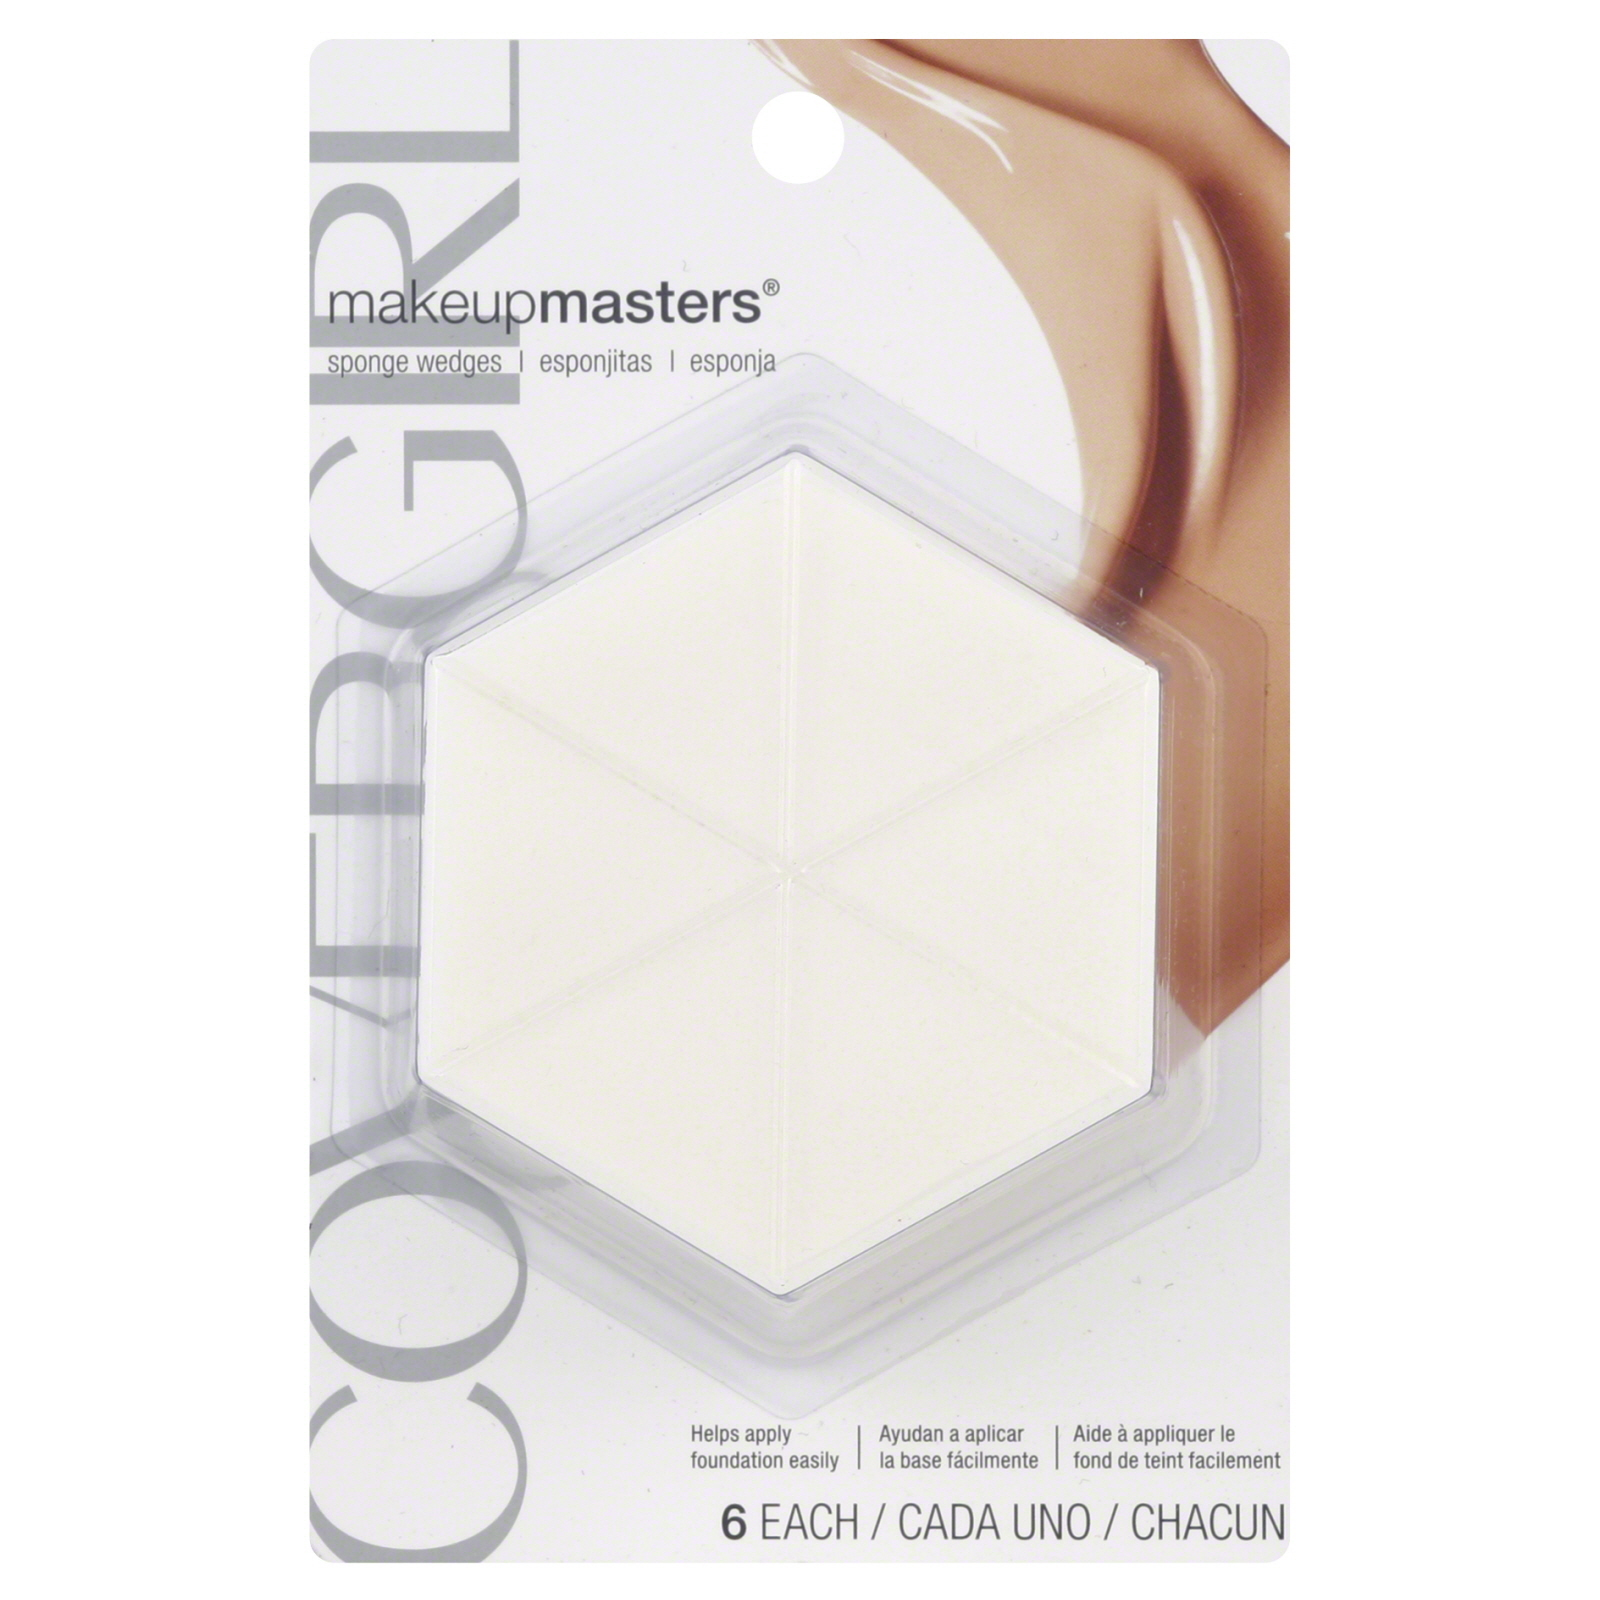 COVERGIRL Makeup Masters Sponge Wedges, 6 ct - Puffs, Sponges u0026 Wedges